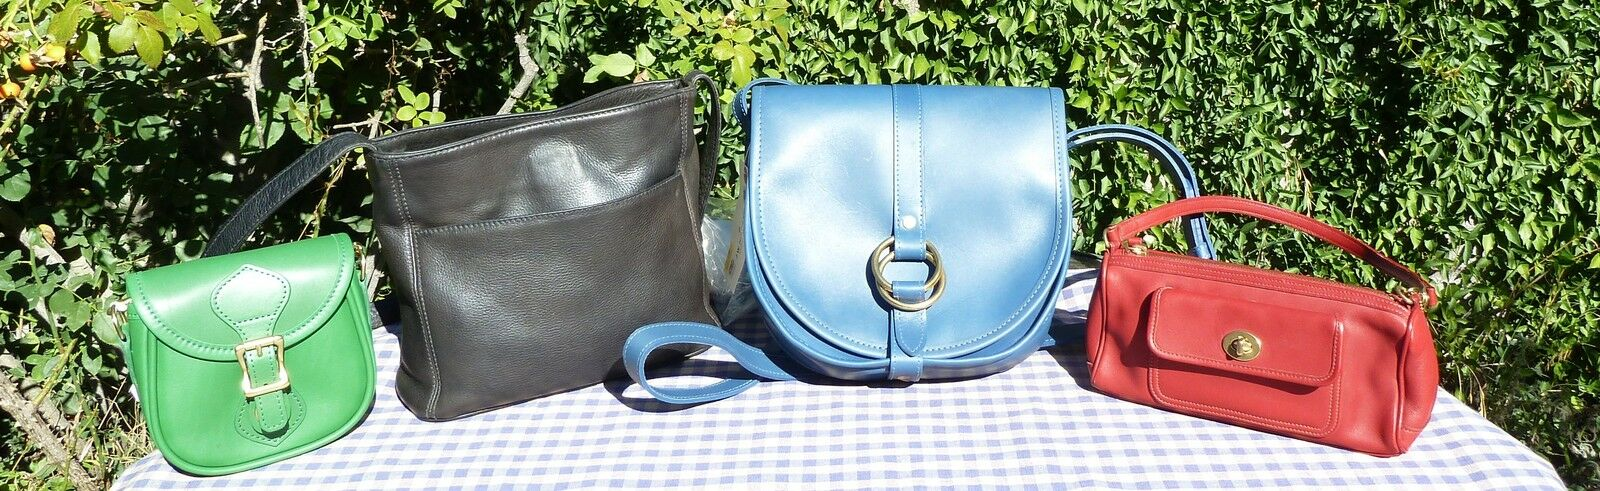 American Purse and Bag